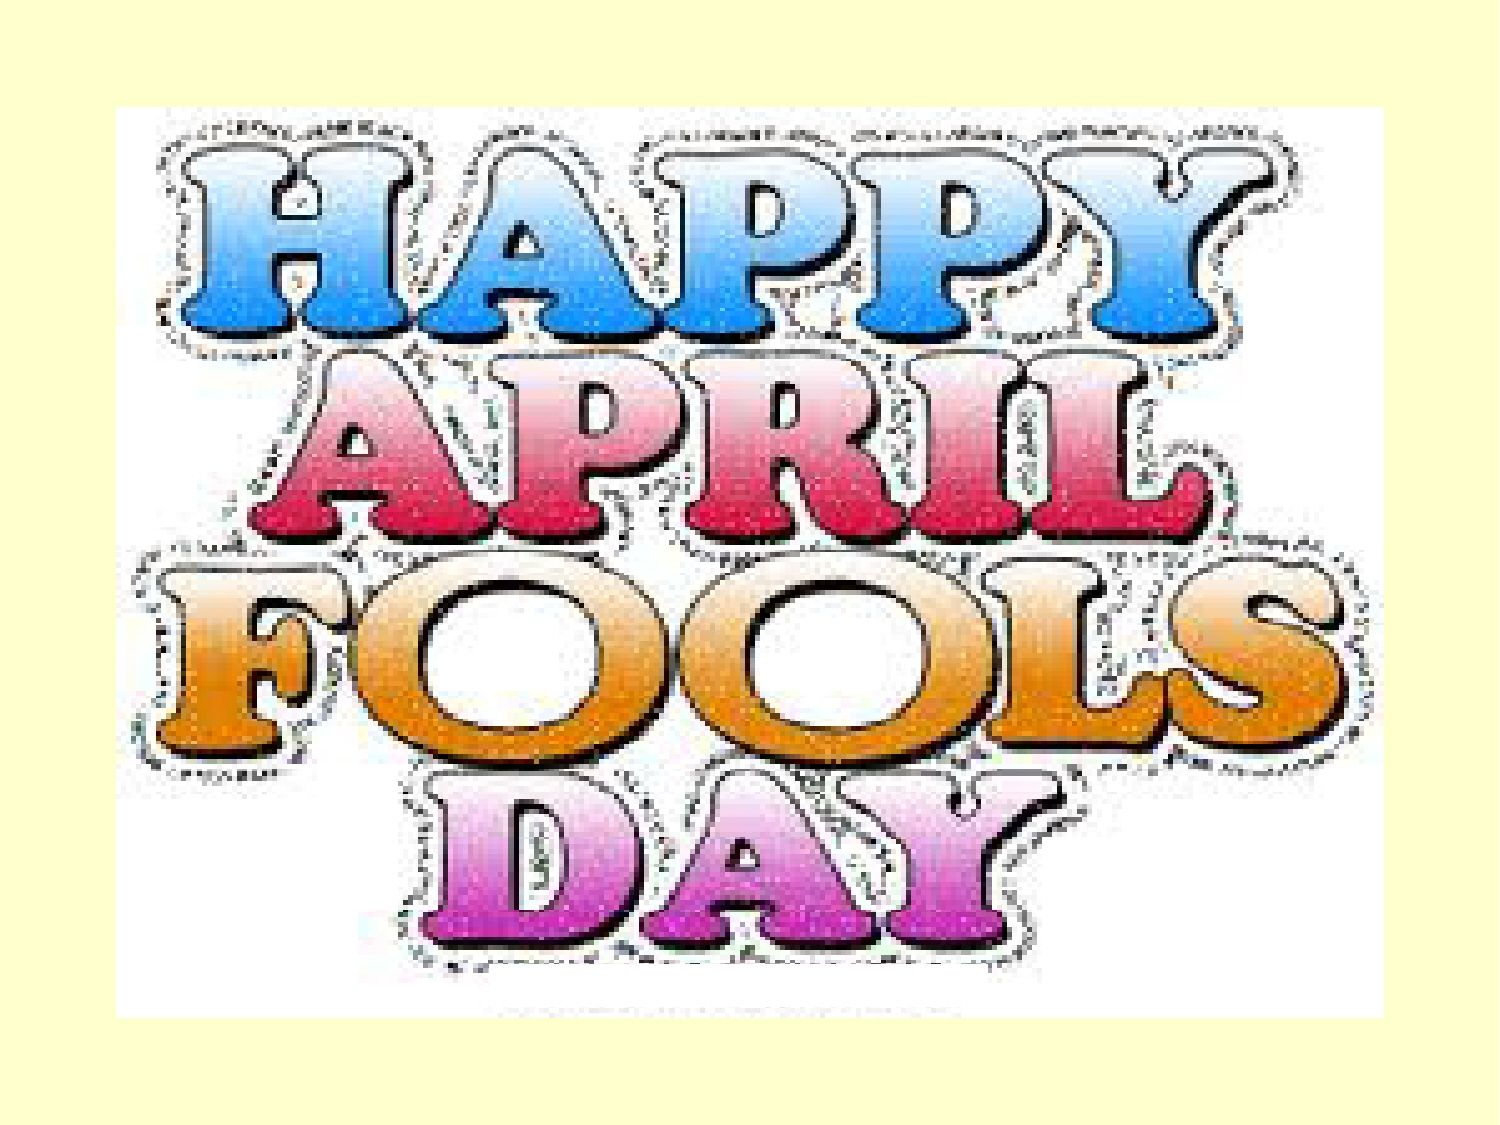 Pin By Sage Green On April Funny April Fools Pranks April Fools Joke April Fools Day Image